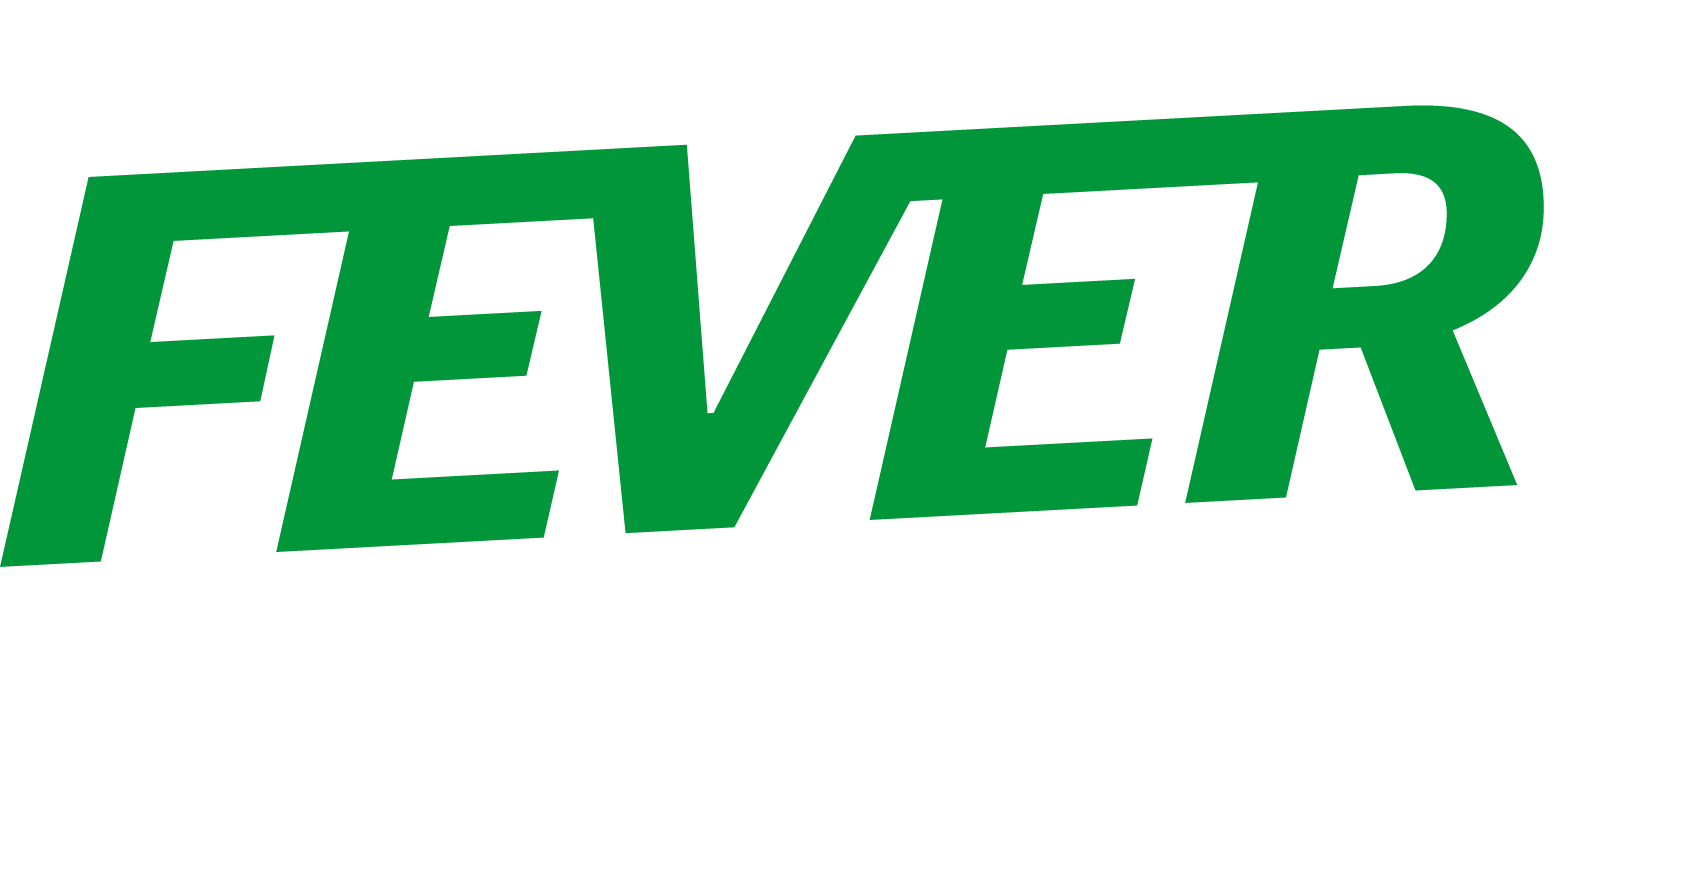 West Coast Fever Academy Logo Main Reversed